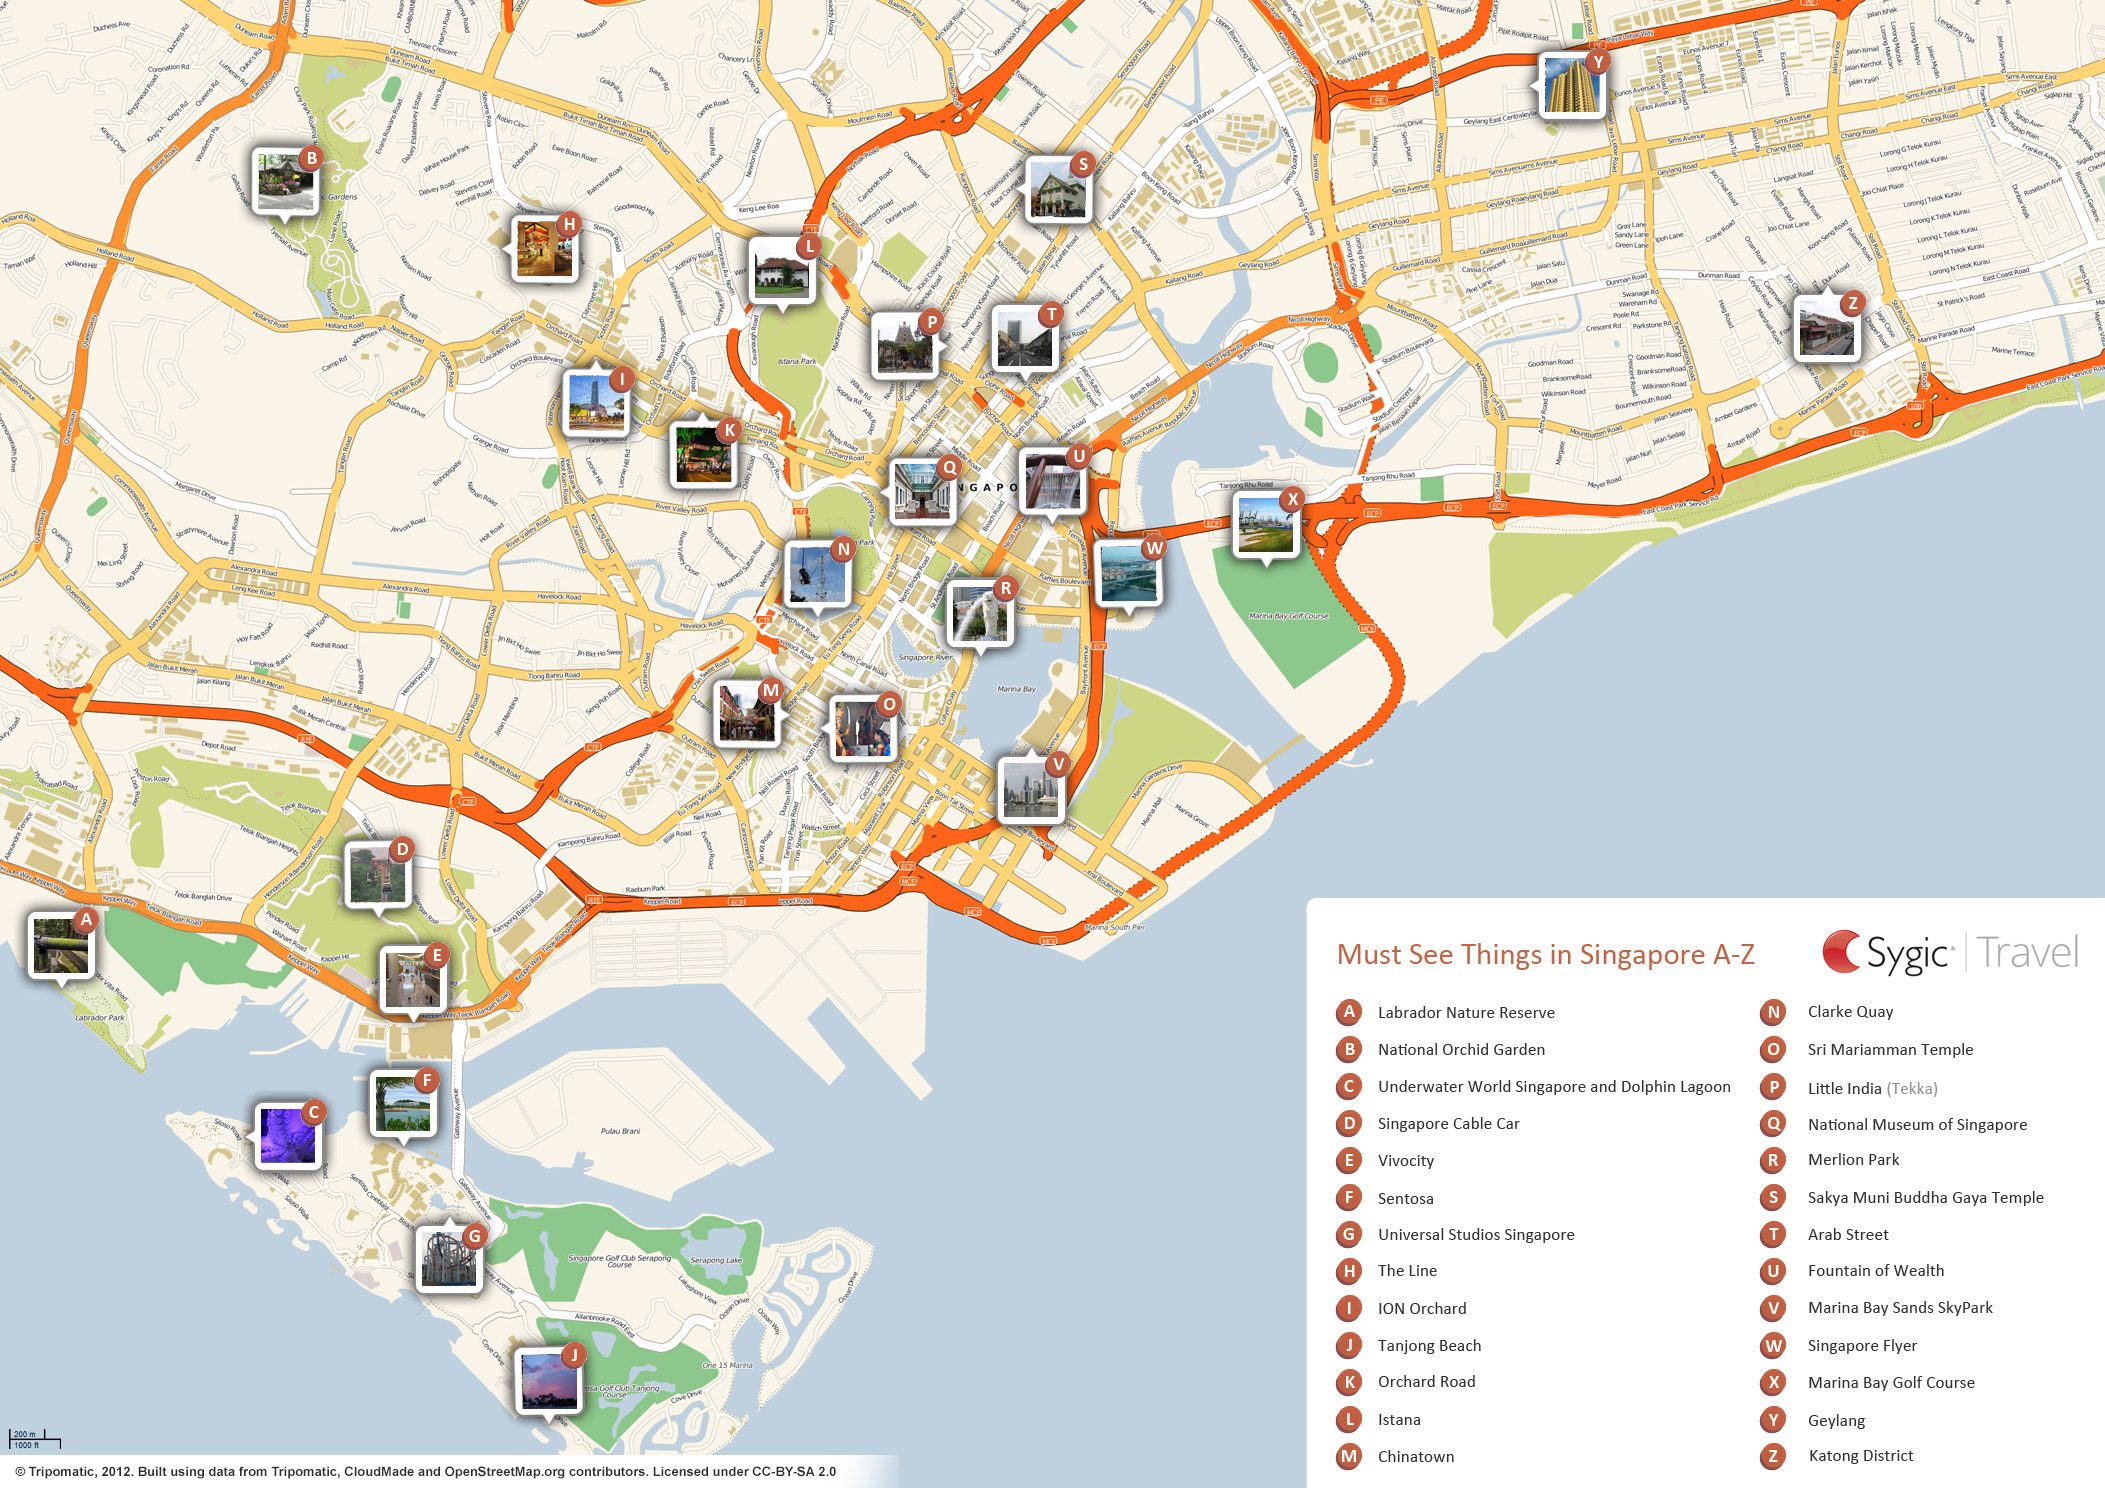 Complete Tourist Attractions Map of Singapore – Singapore Tourist Attractions Map